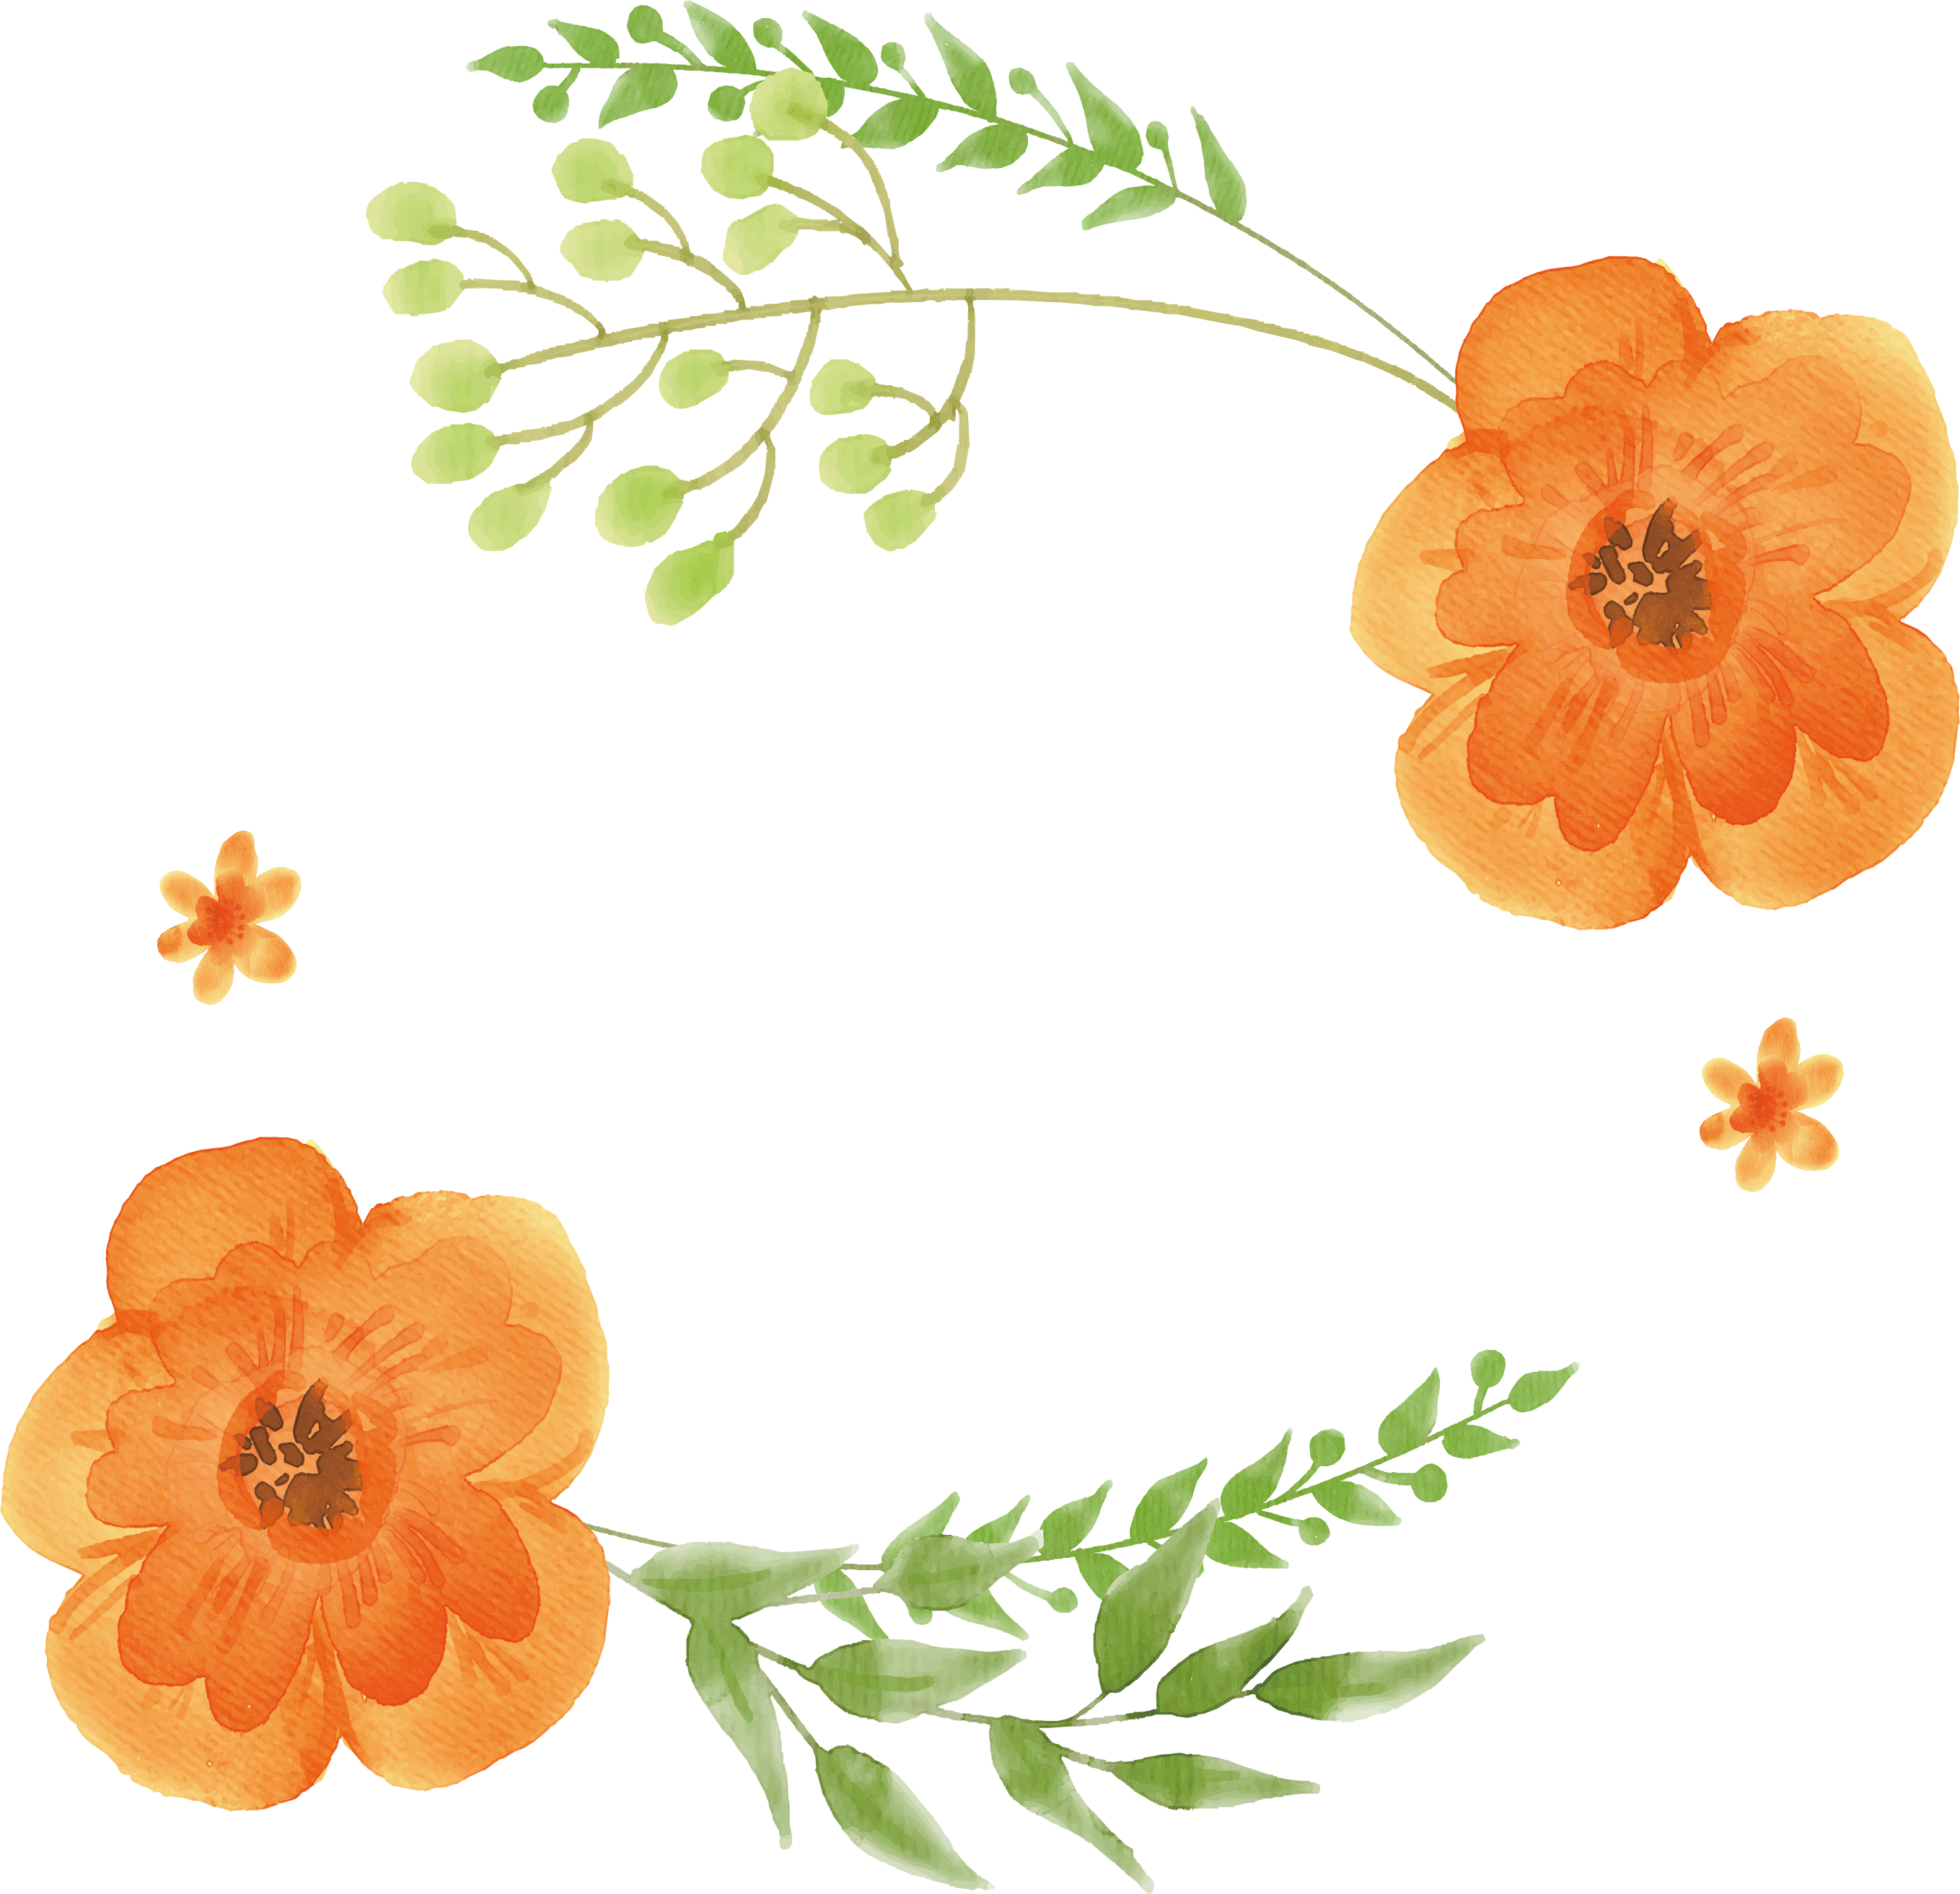 Flowers orange painting flower. Plants clipart watercolor